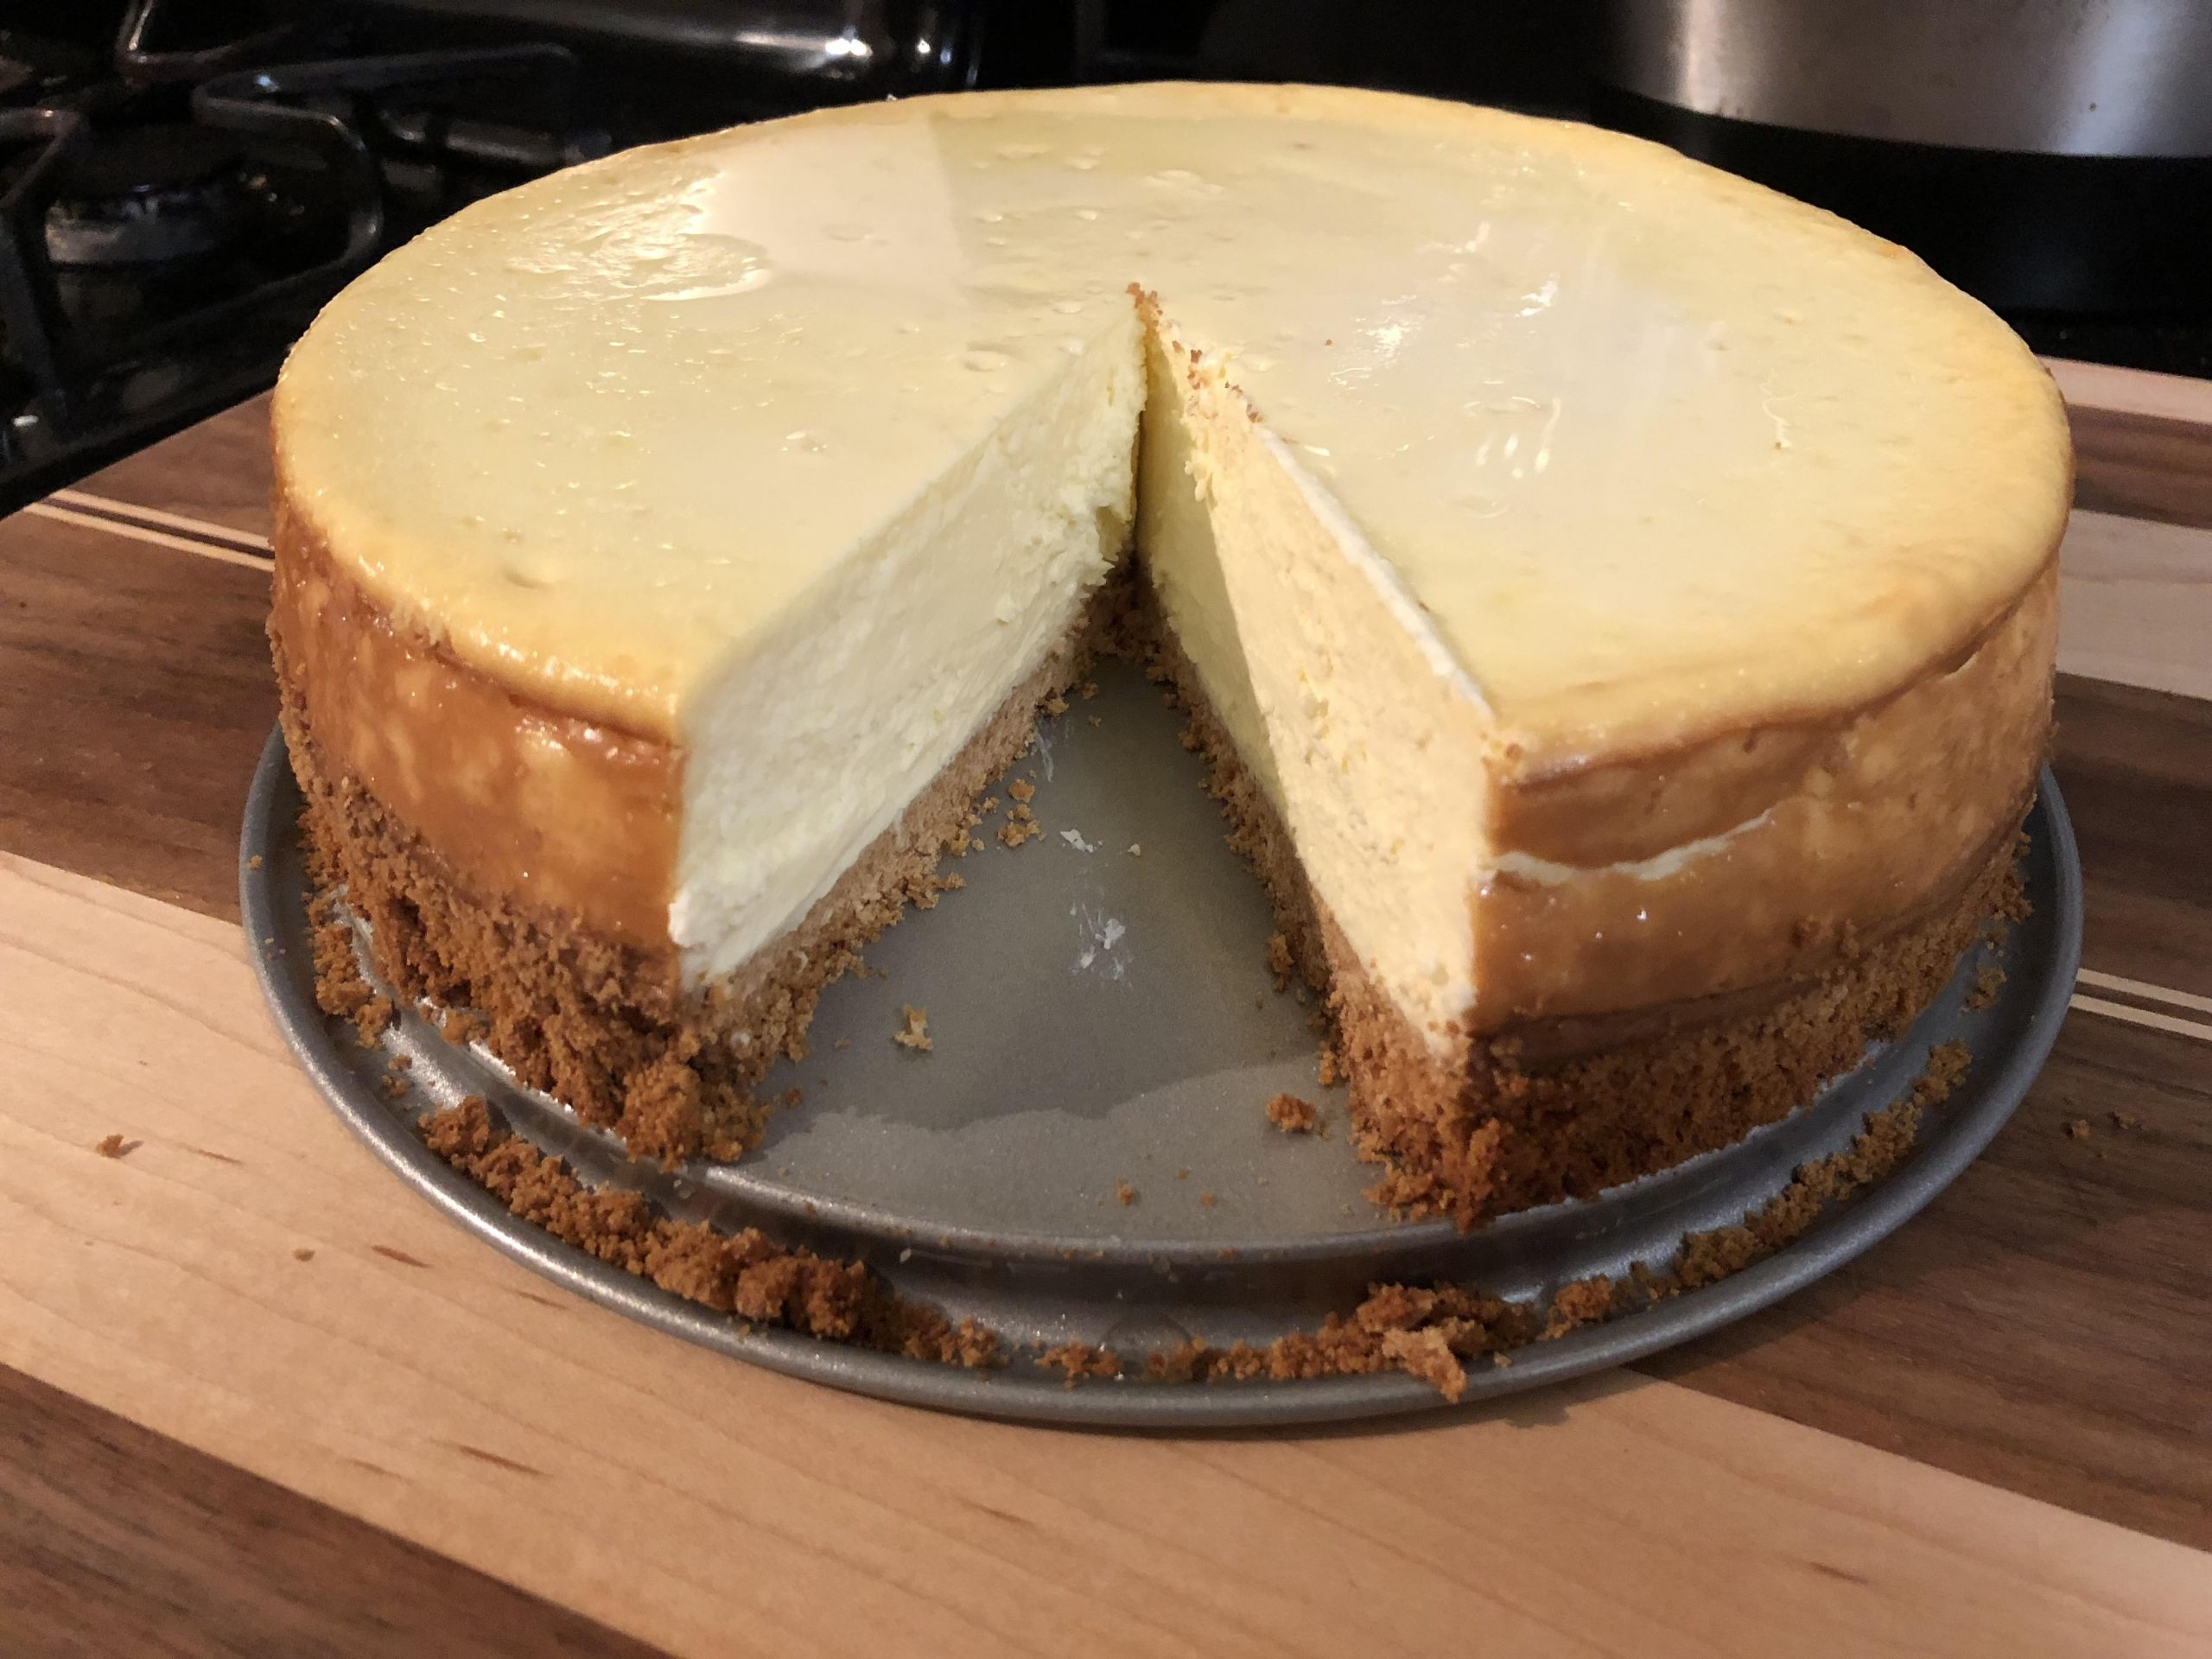 Home Made Cheese Cake  [Homemade] Cheesecake turned out great other than loose